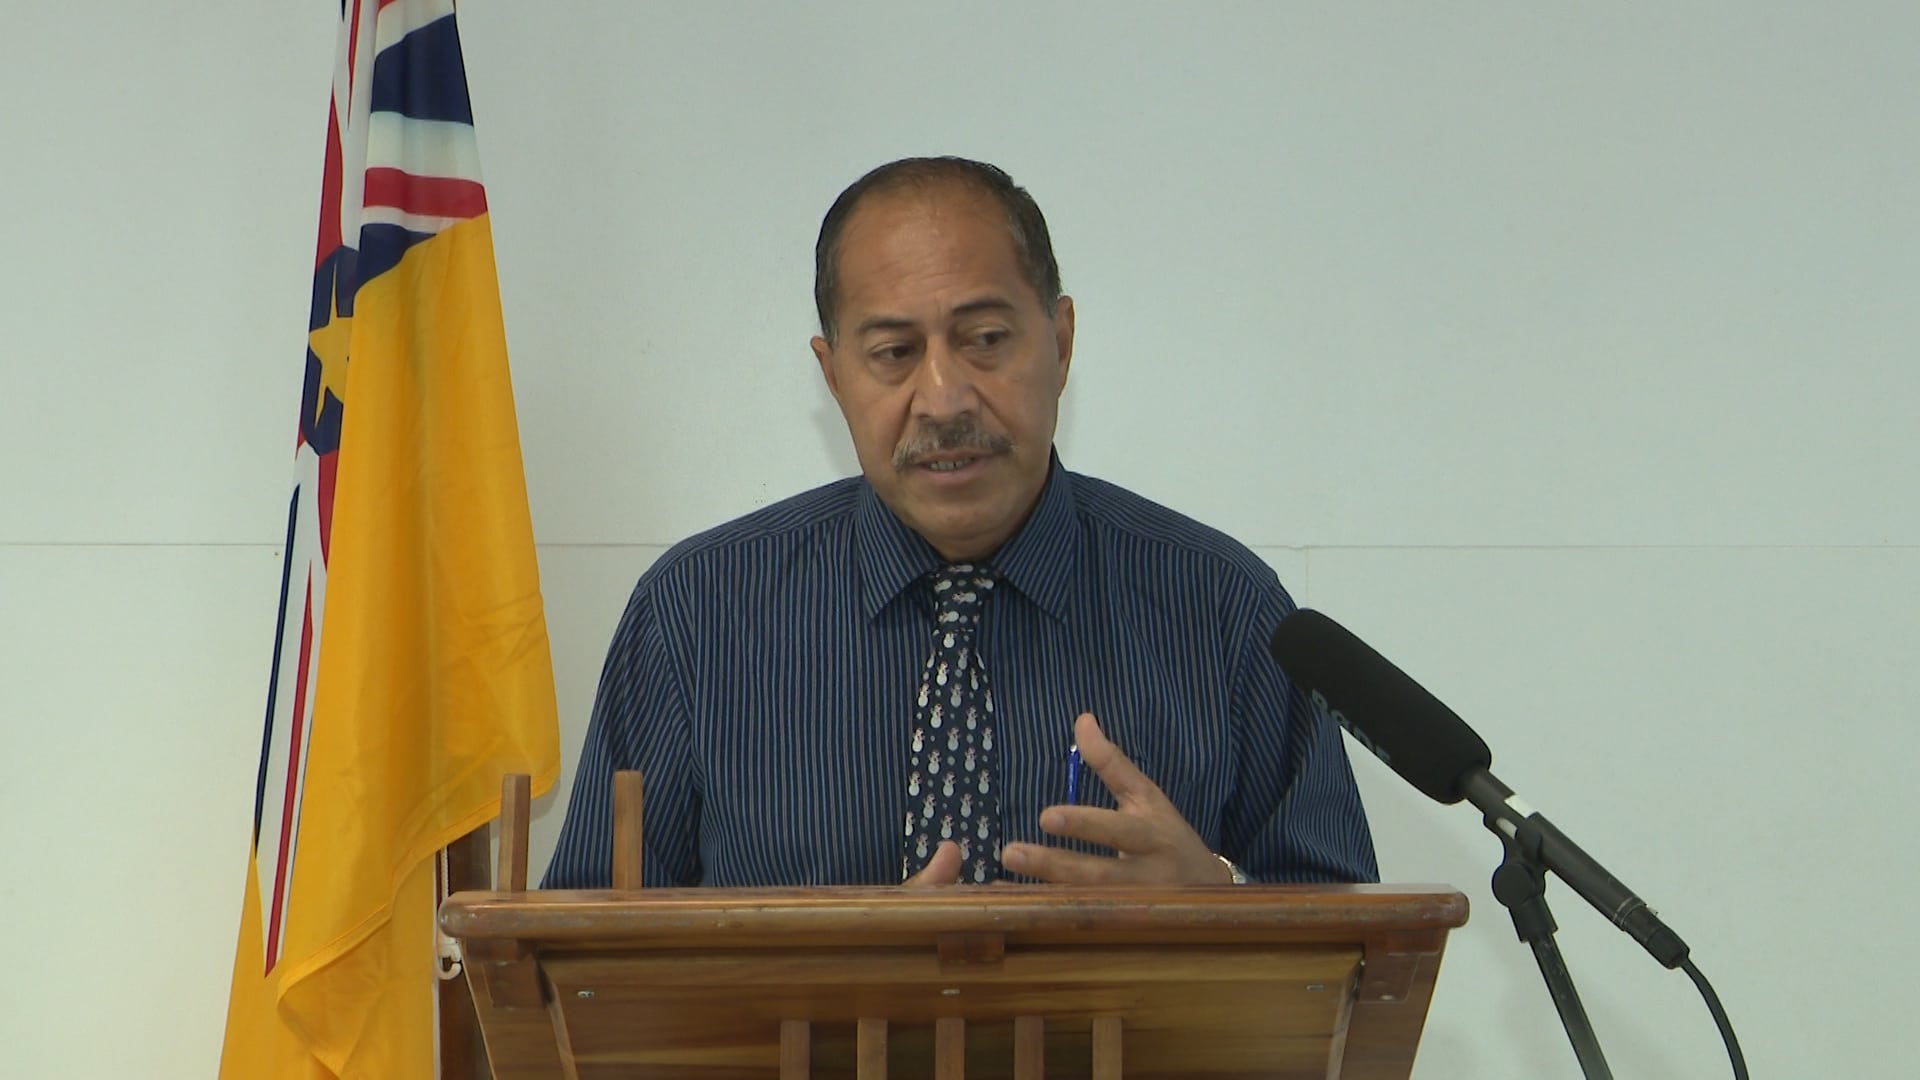 The National Budget address will be announced next Wednesday, July 8th in the Fono Ekepule sitting.  Premier Dalton Tagelagi announced this in his first ever Press conference and has confirmed that…